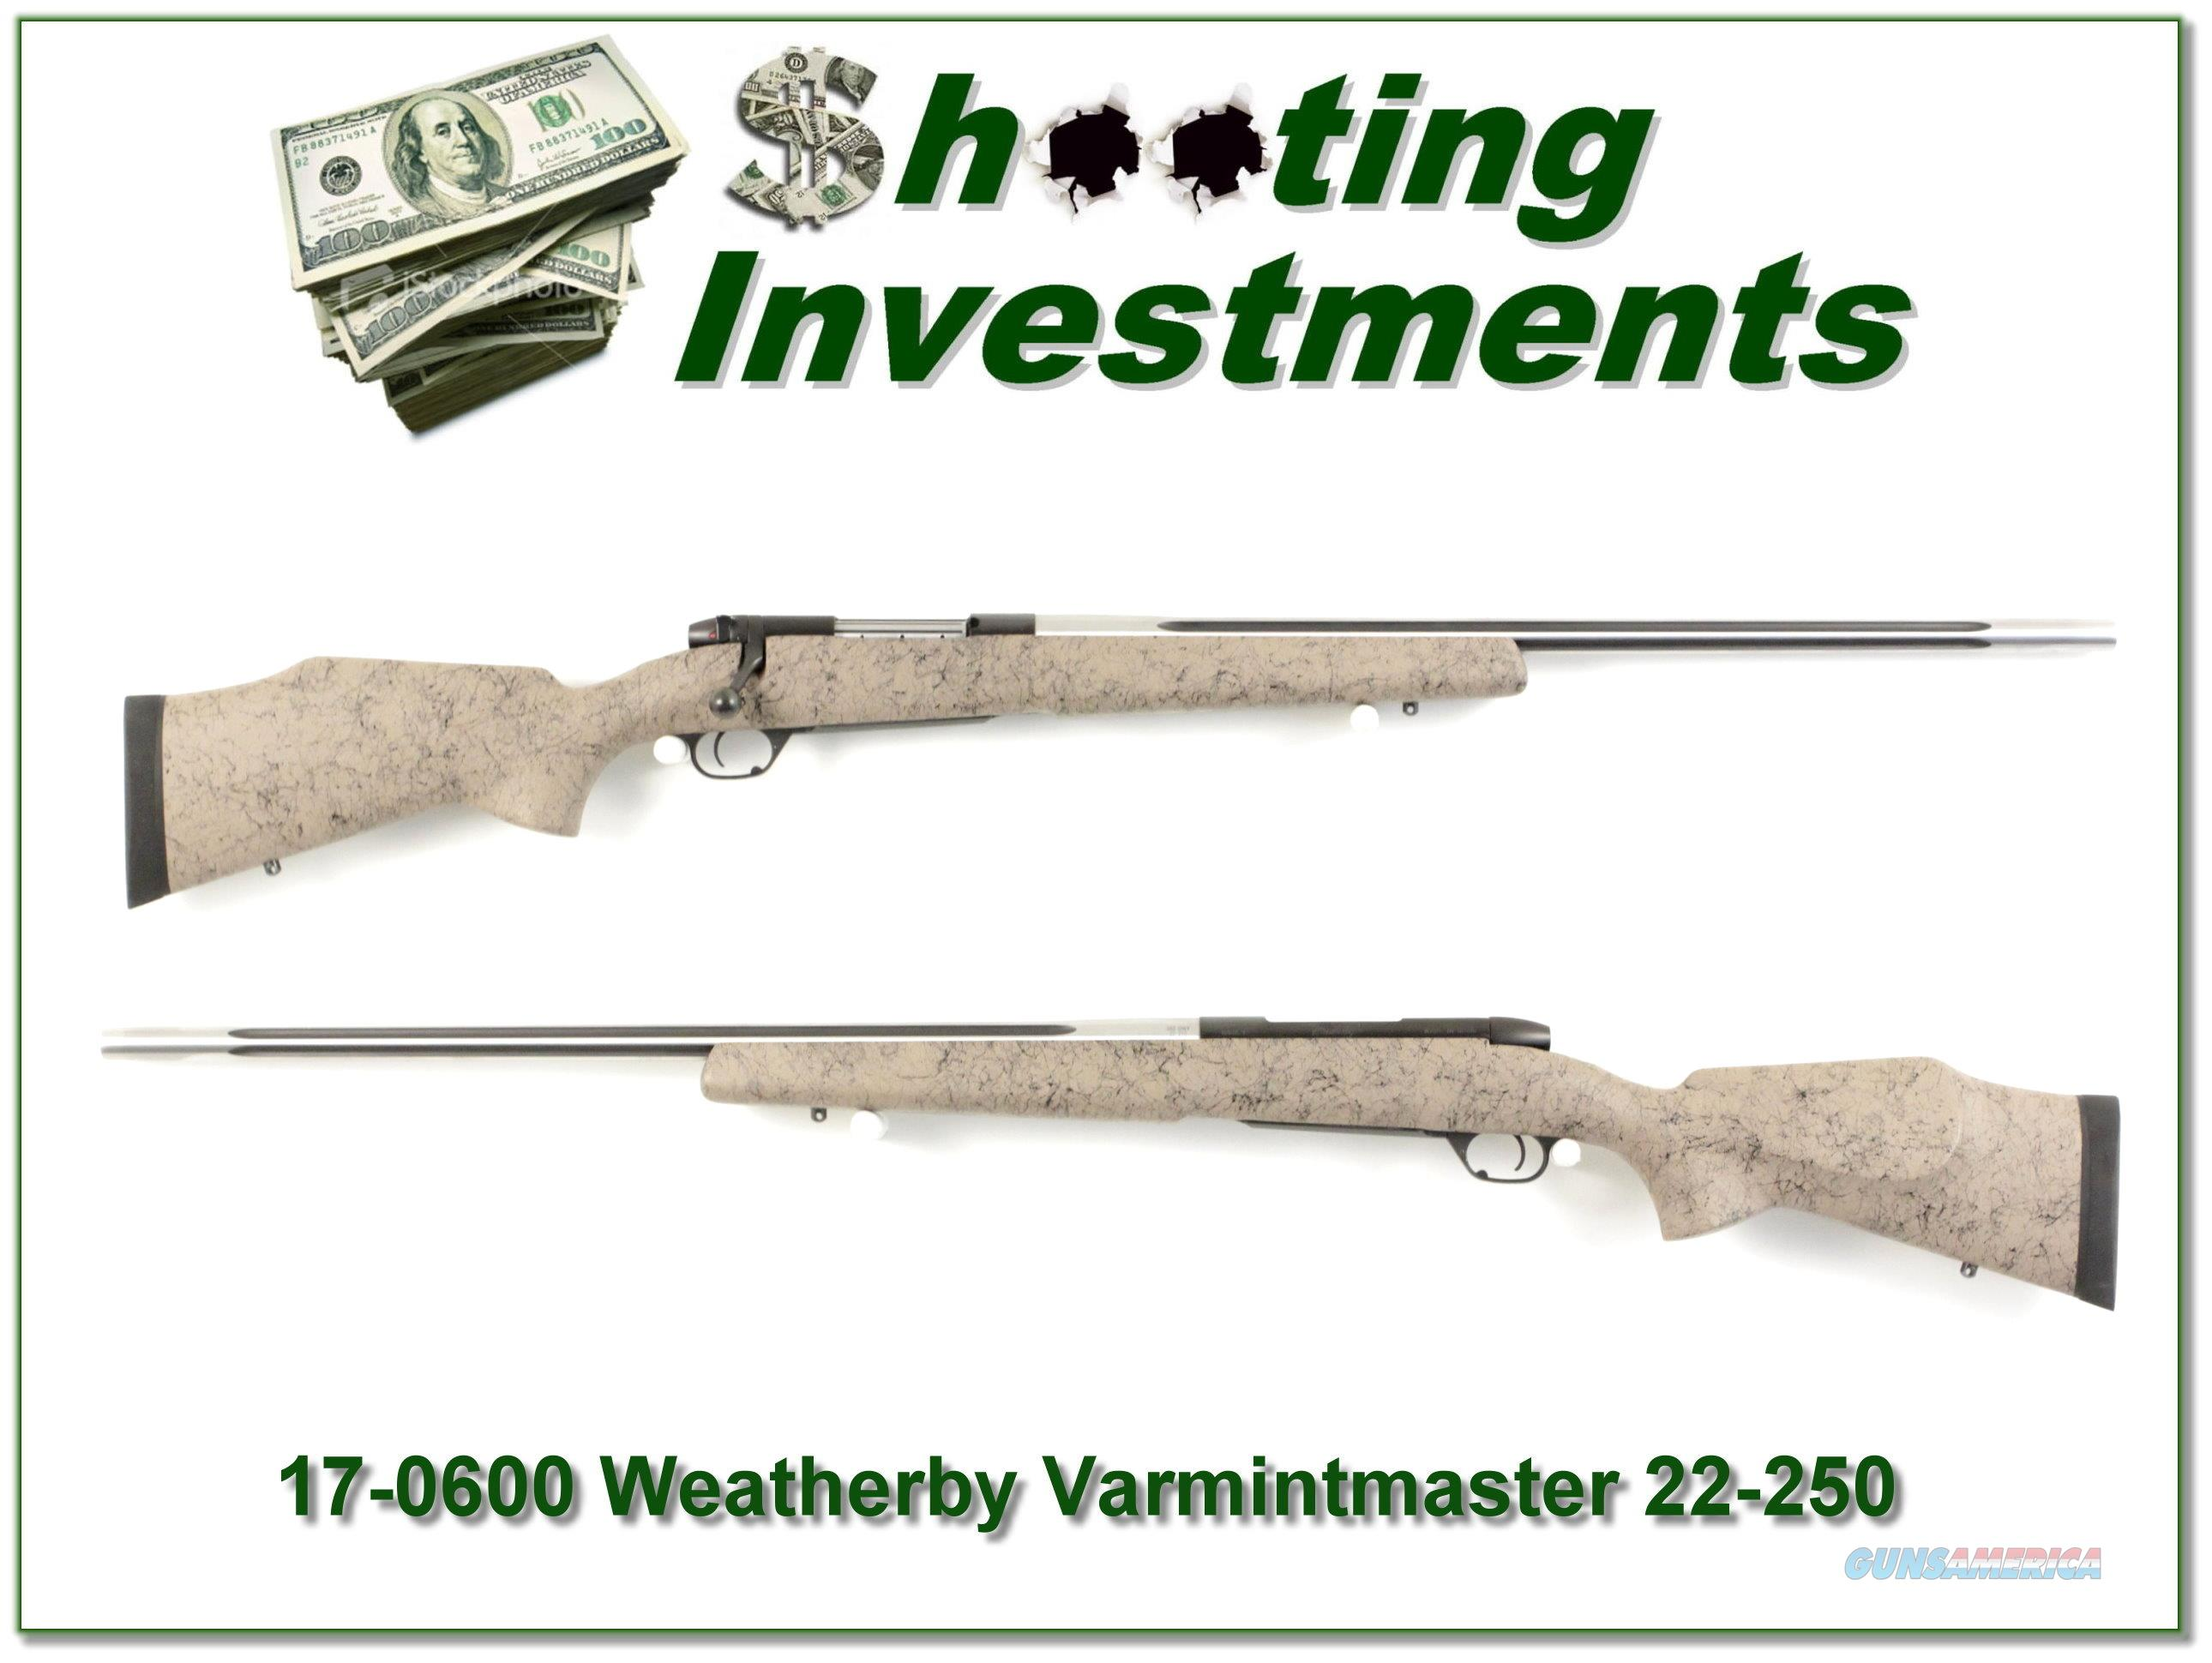 Weatherby Mark V 22-250 Super Varmintmaster Exc Cond  Guns > Rifles > Weatherby Rifles > Sporting